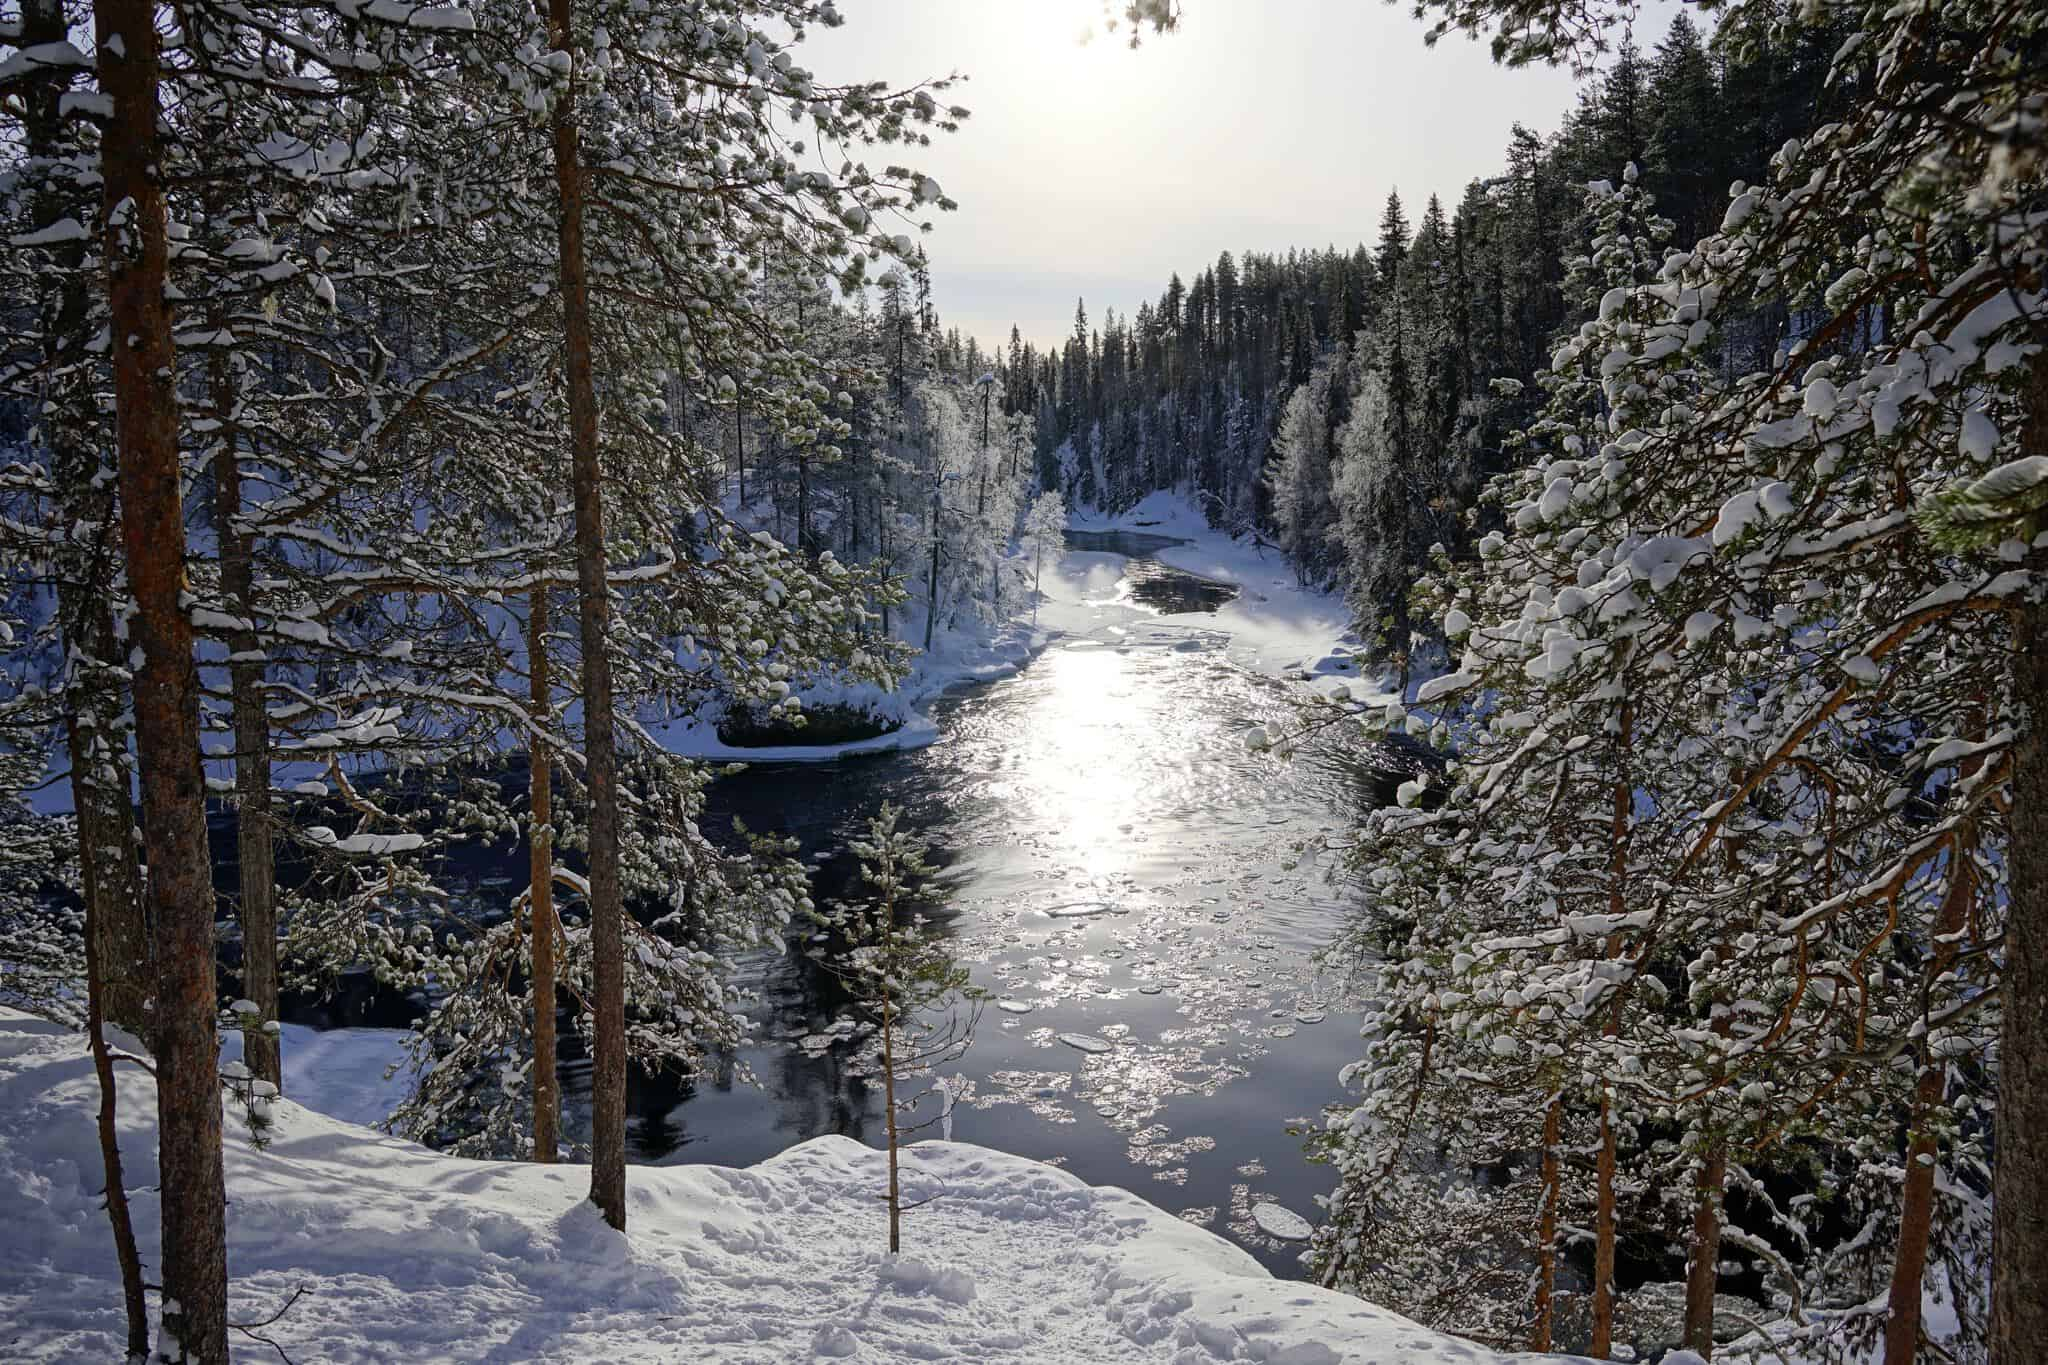 The Oulanka National Park is also worth a visit in winter